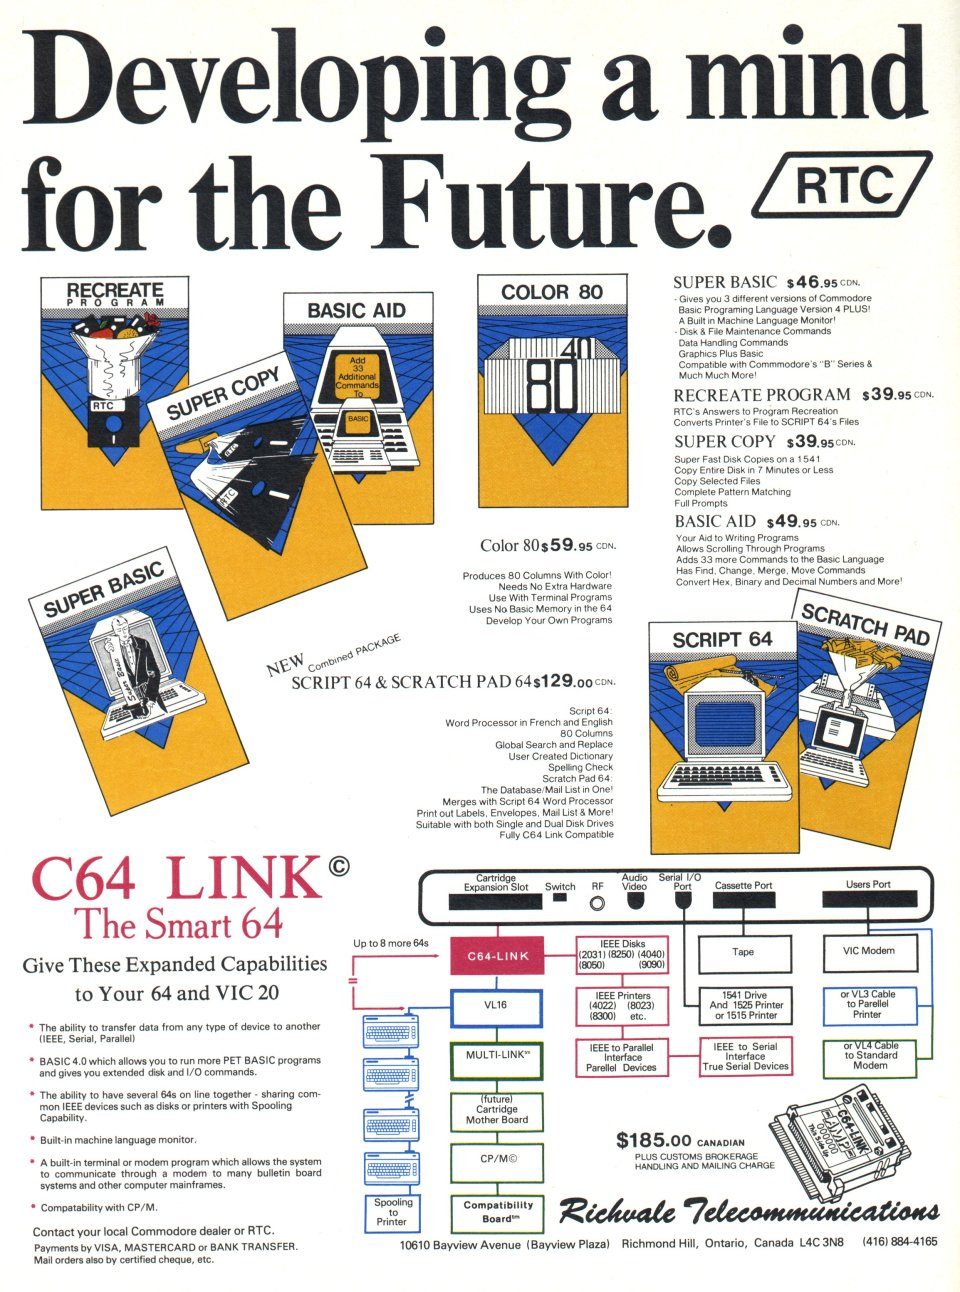 [Advertisement: Utilities an 'C64 Link' by Richvale Telecommunications]